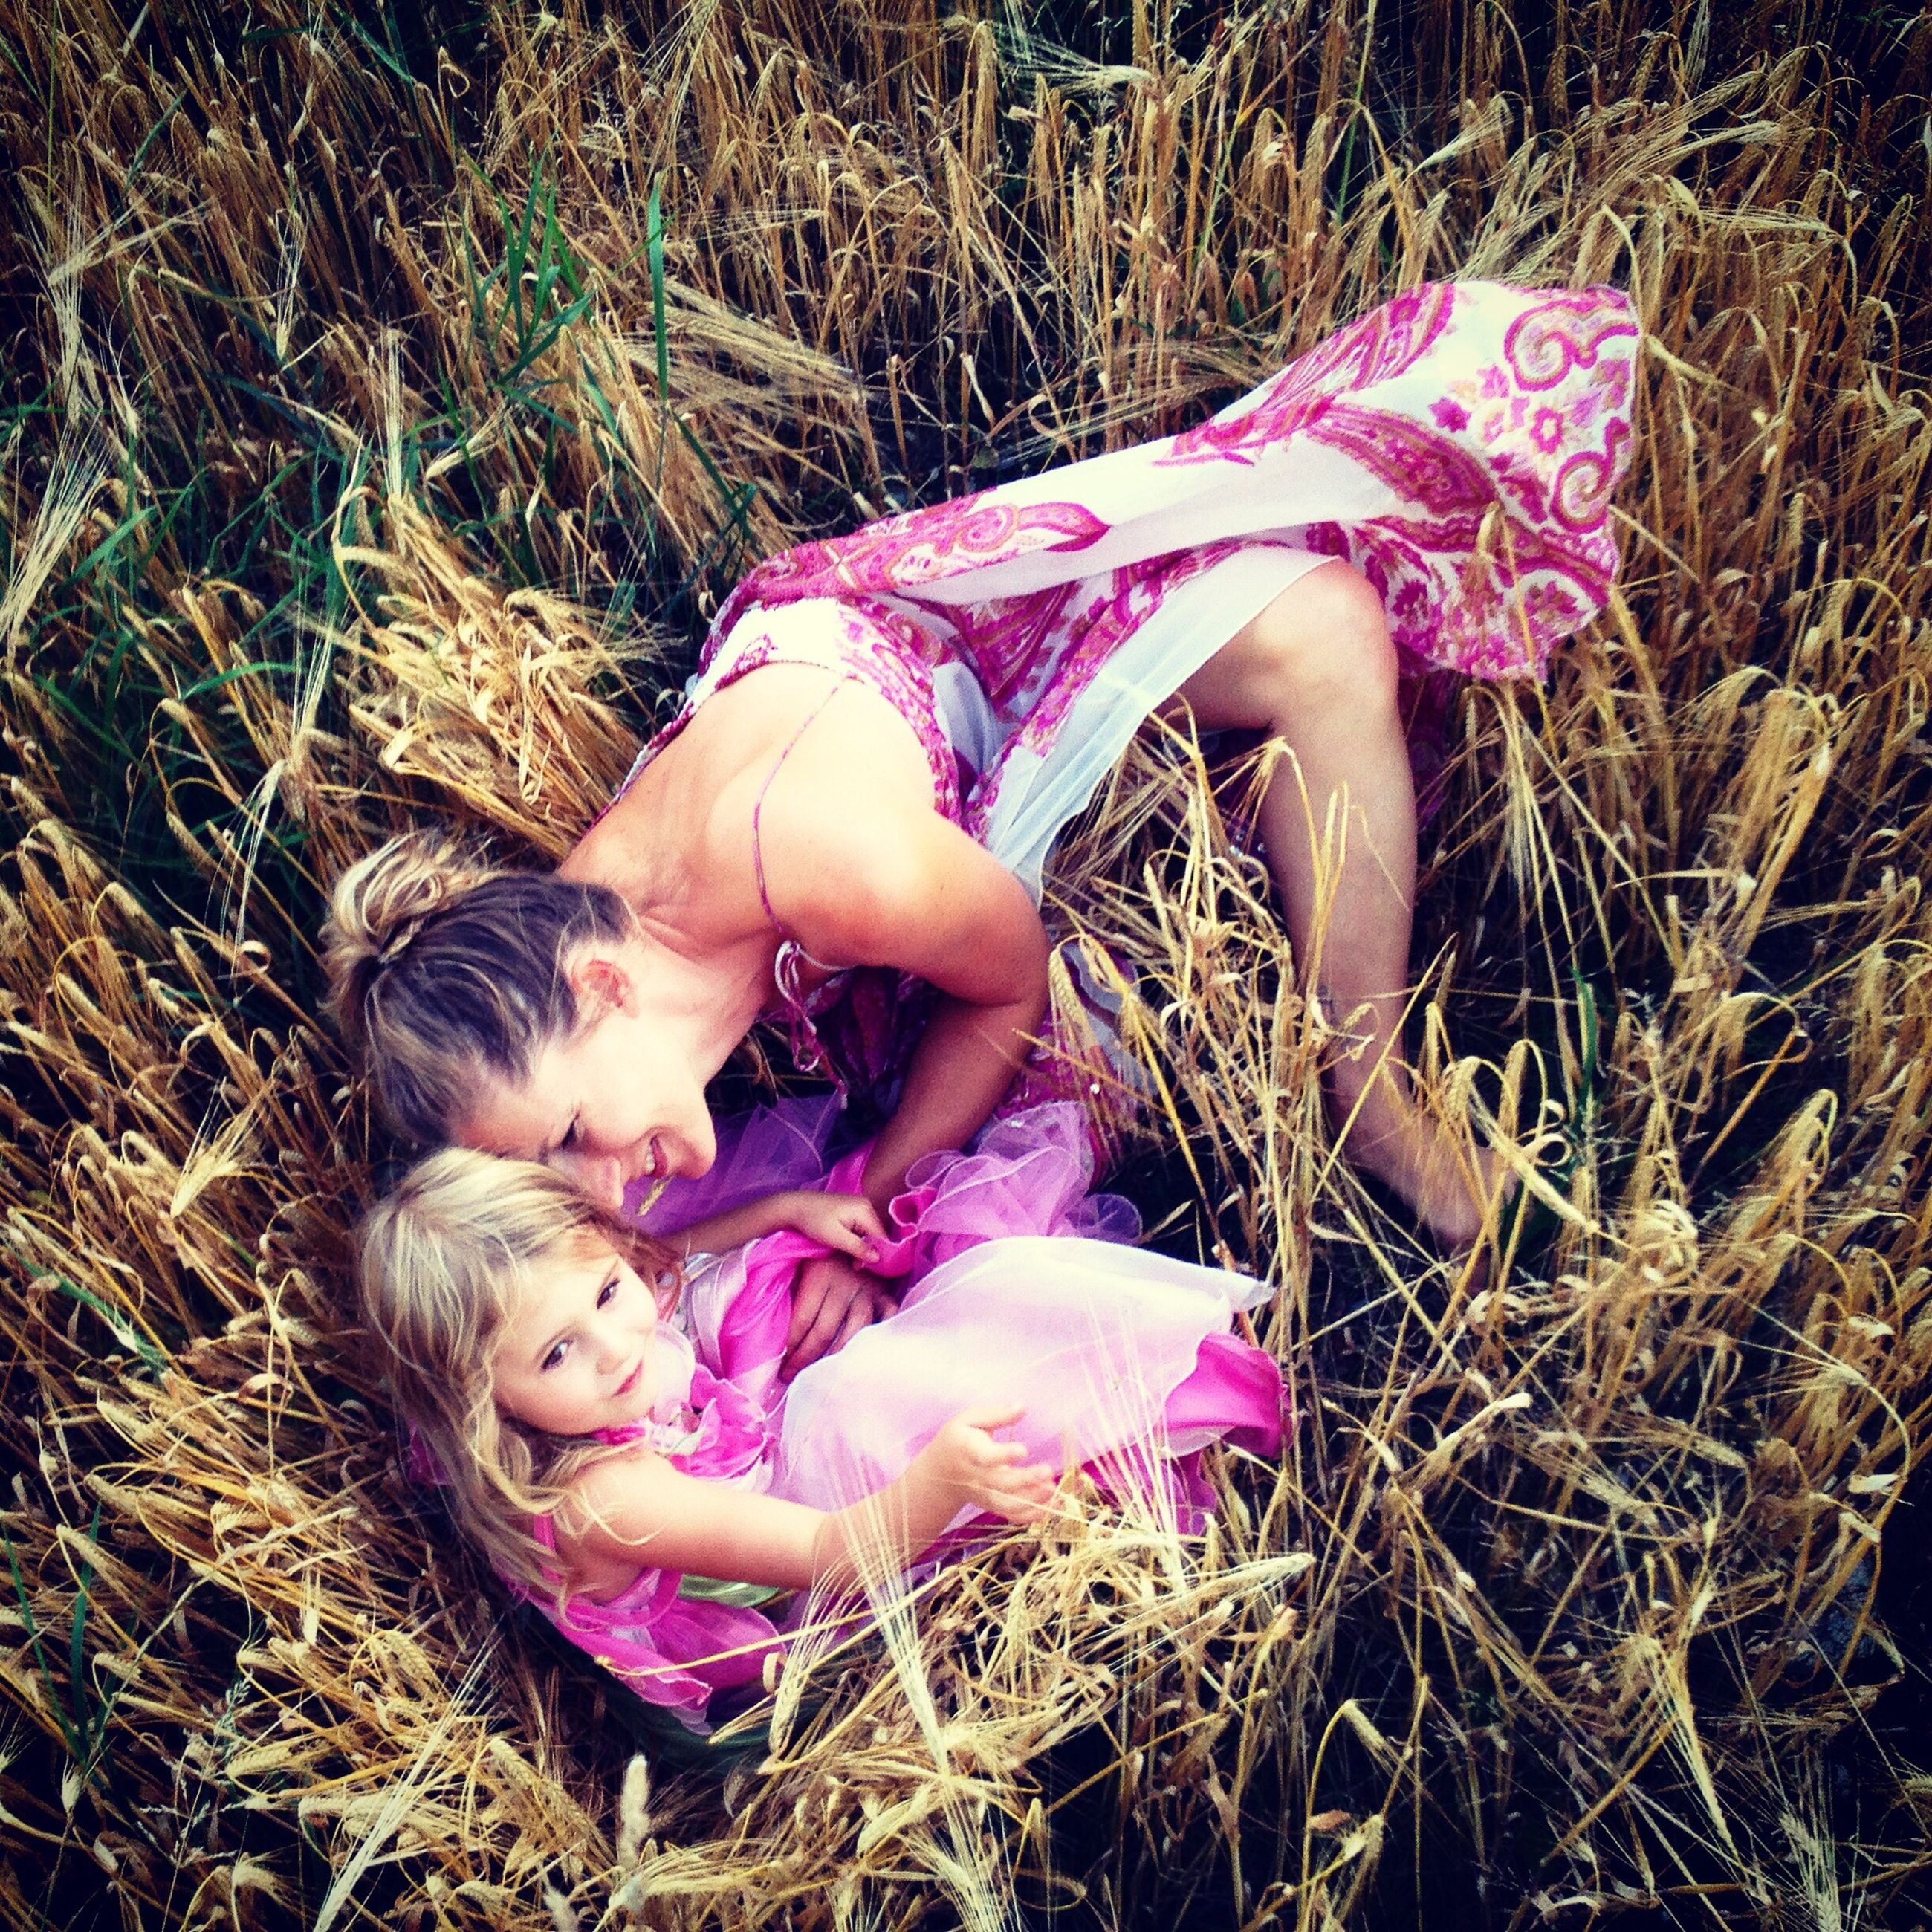 childhood, field, grass, high angle view, elementary age, person, lying down, lifestyles, full length, leisure activity, innocence, relaxation, girls, cute, day, grassy, sitting, playful